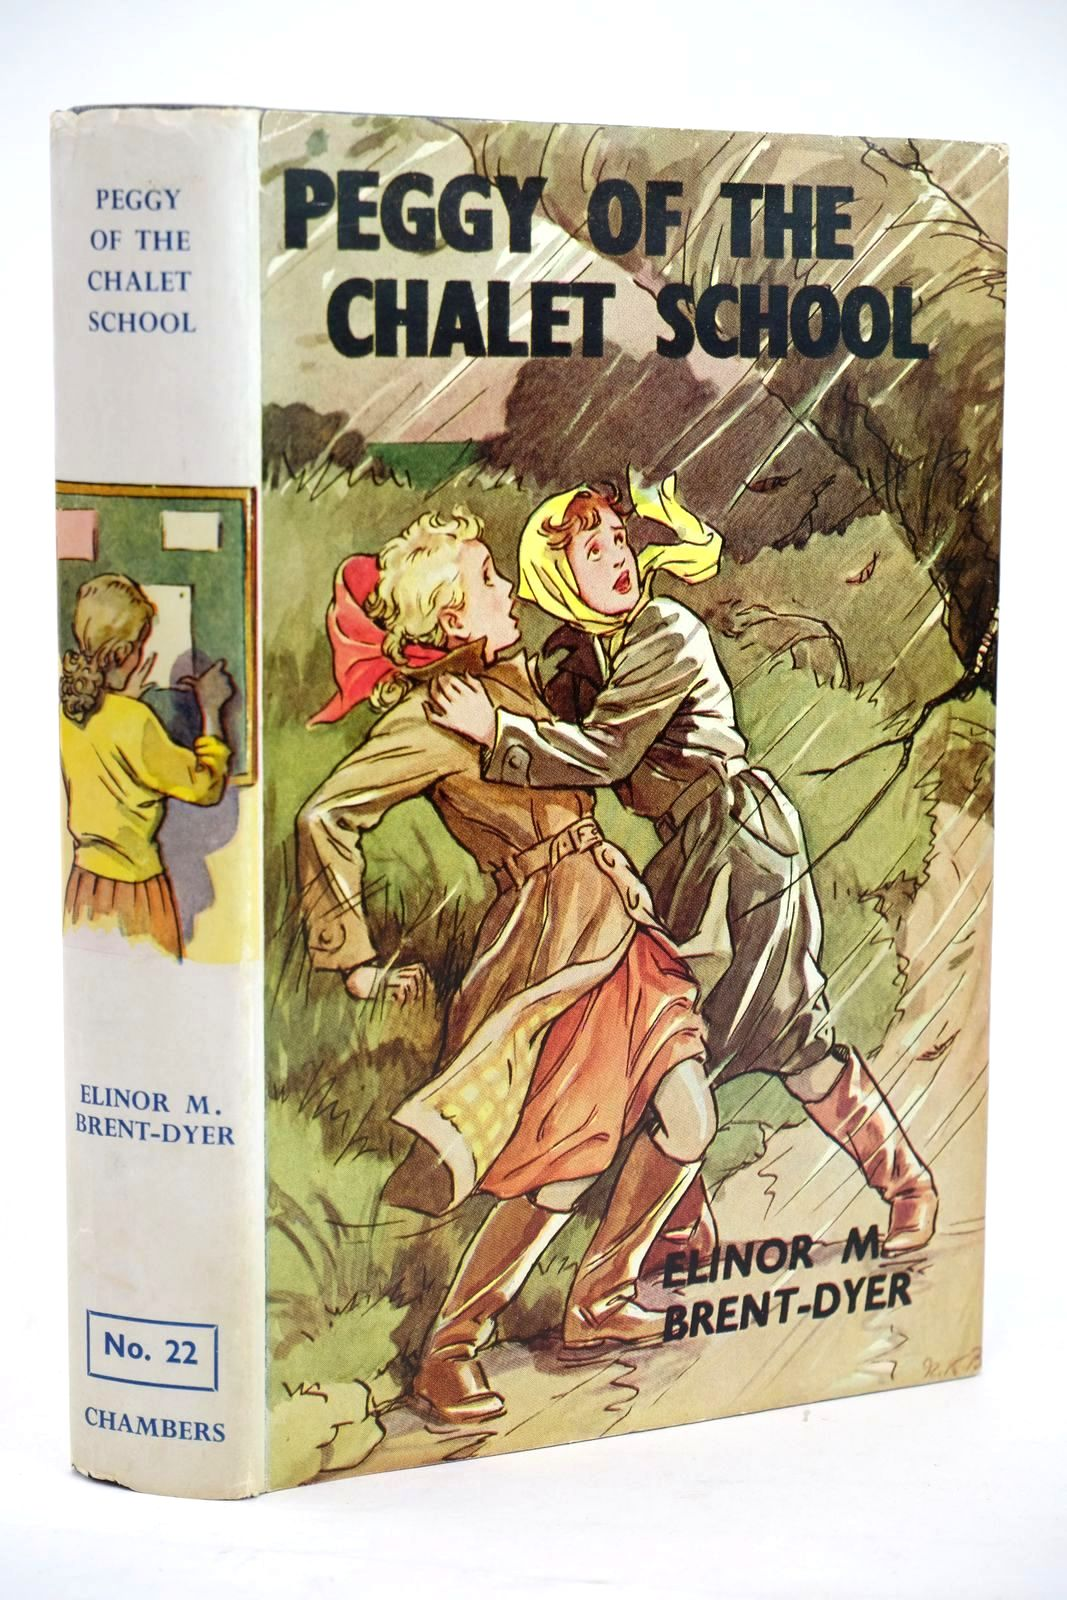 Photo of PEGGY OF THE CHALET SCHOOL written by Brent-Dyer, Elinor M. illustrated by Brisley, Nina K. published by W. & R. Chambers Limited (STOCK CODE: 1319431)  for sale by Stella & Rose's Books